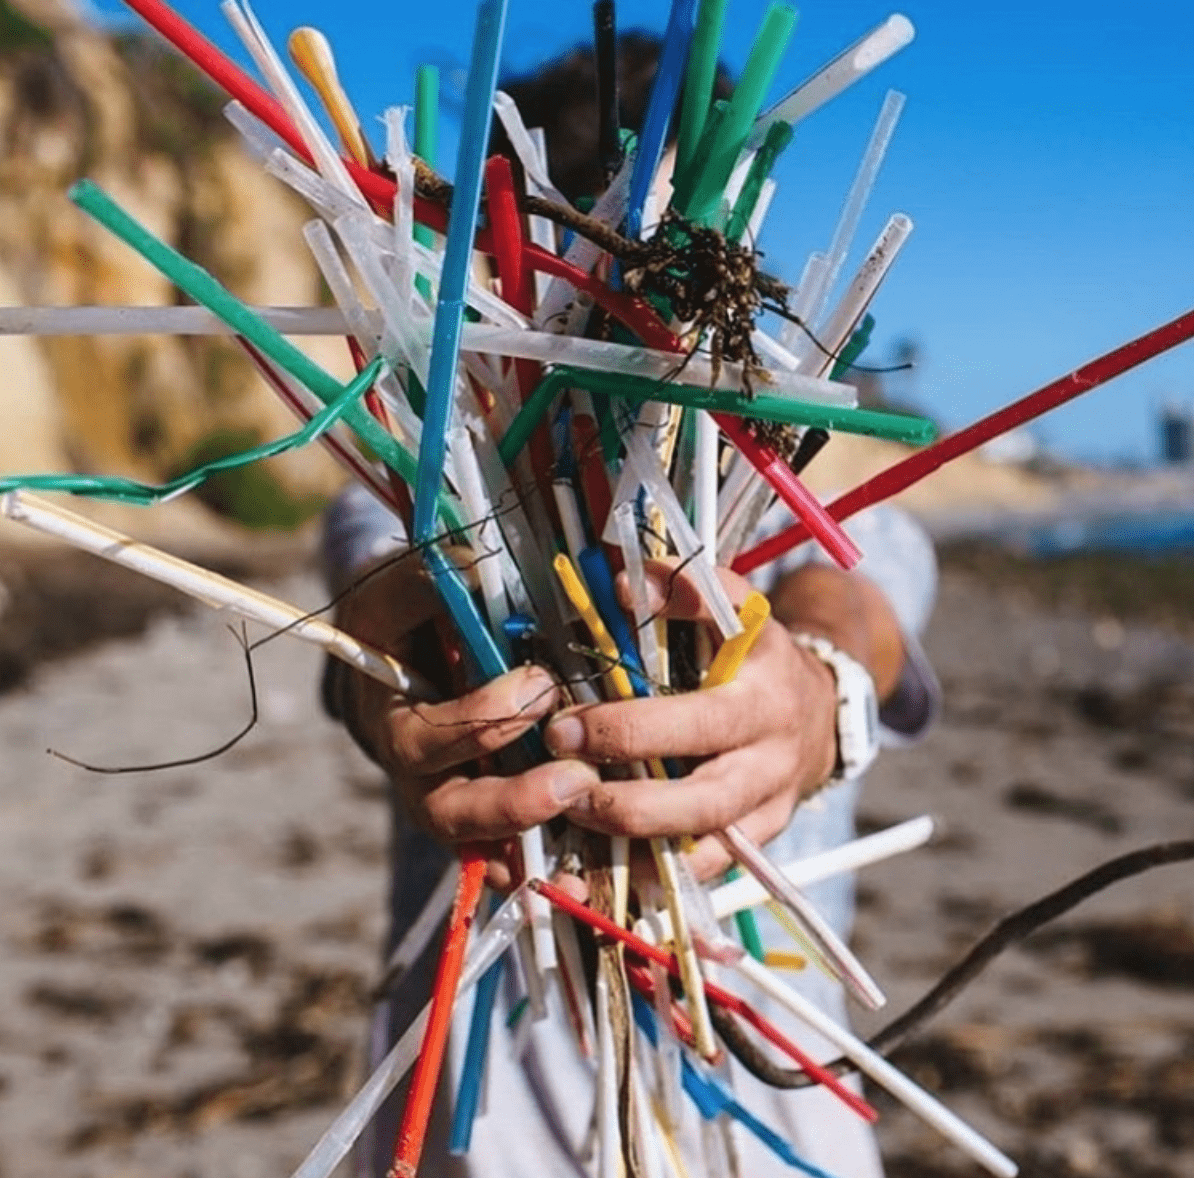 The Final Straw, Reusable, Portable, Collapsible Stainless Steel Straws - Virtuul News